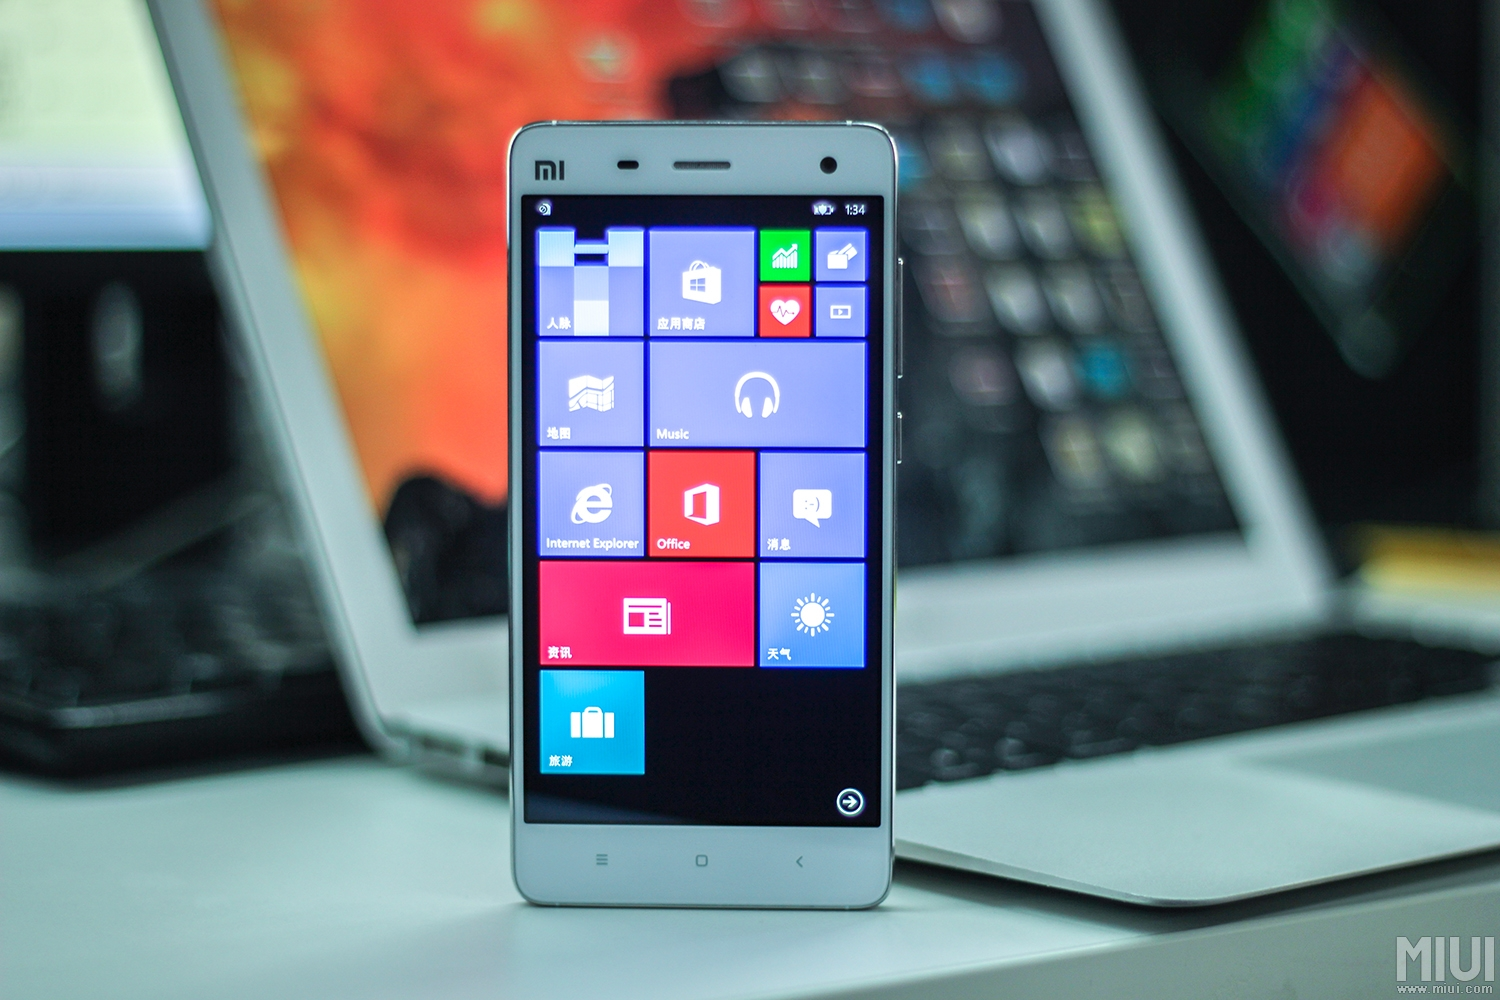 xiaomi-mi4-windows-10-mobile-firmware